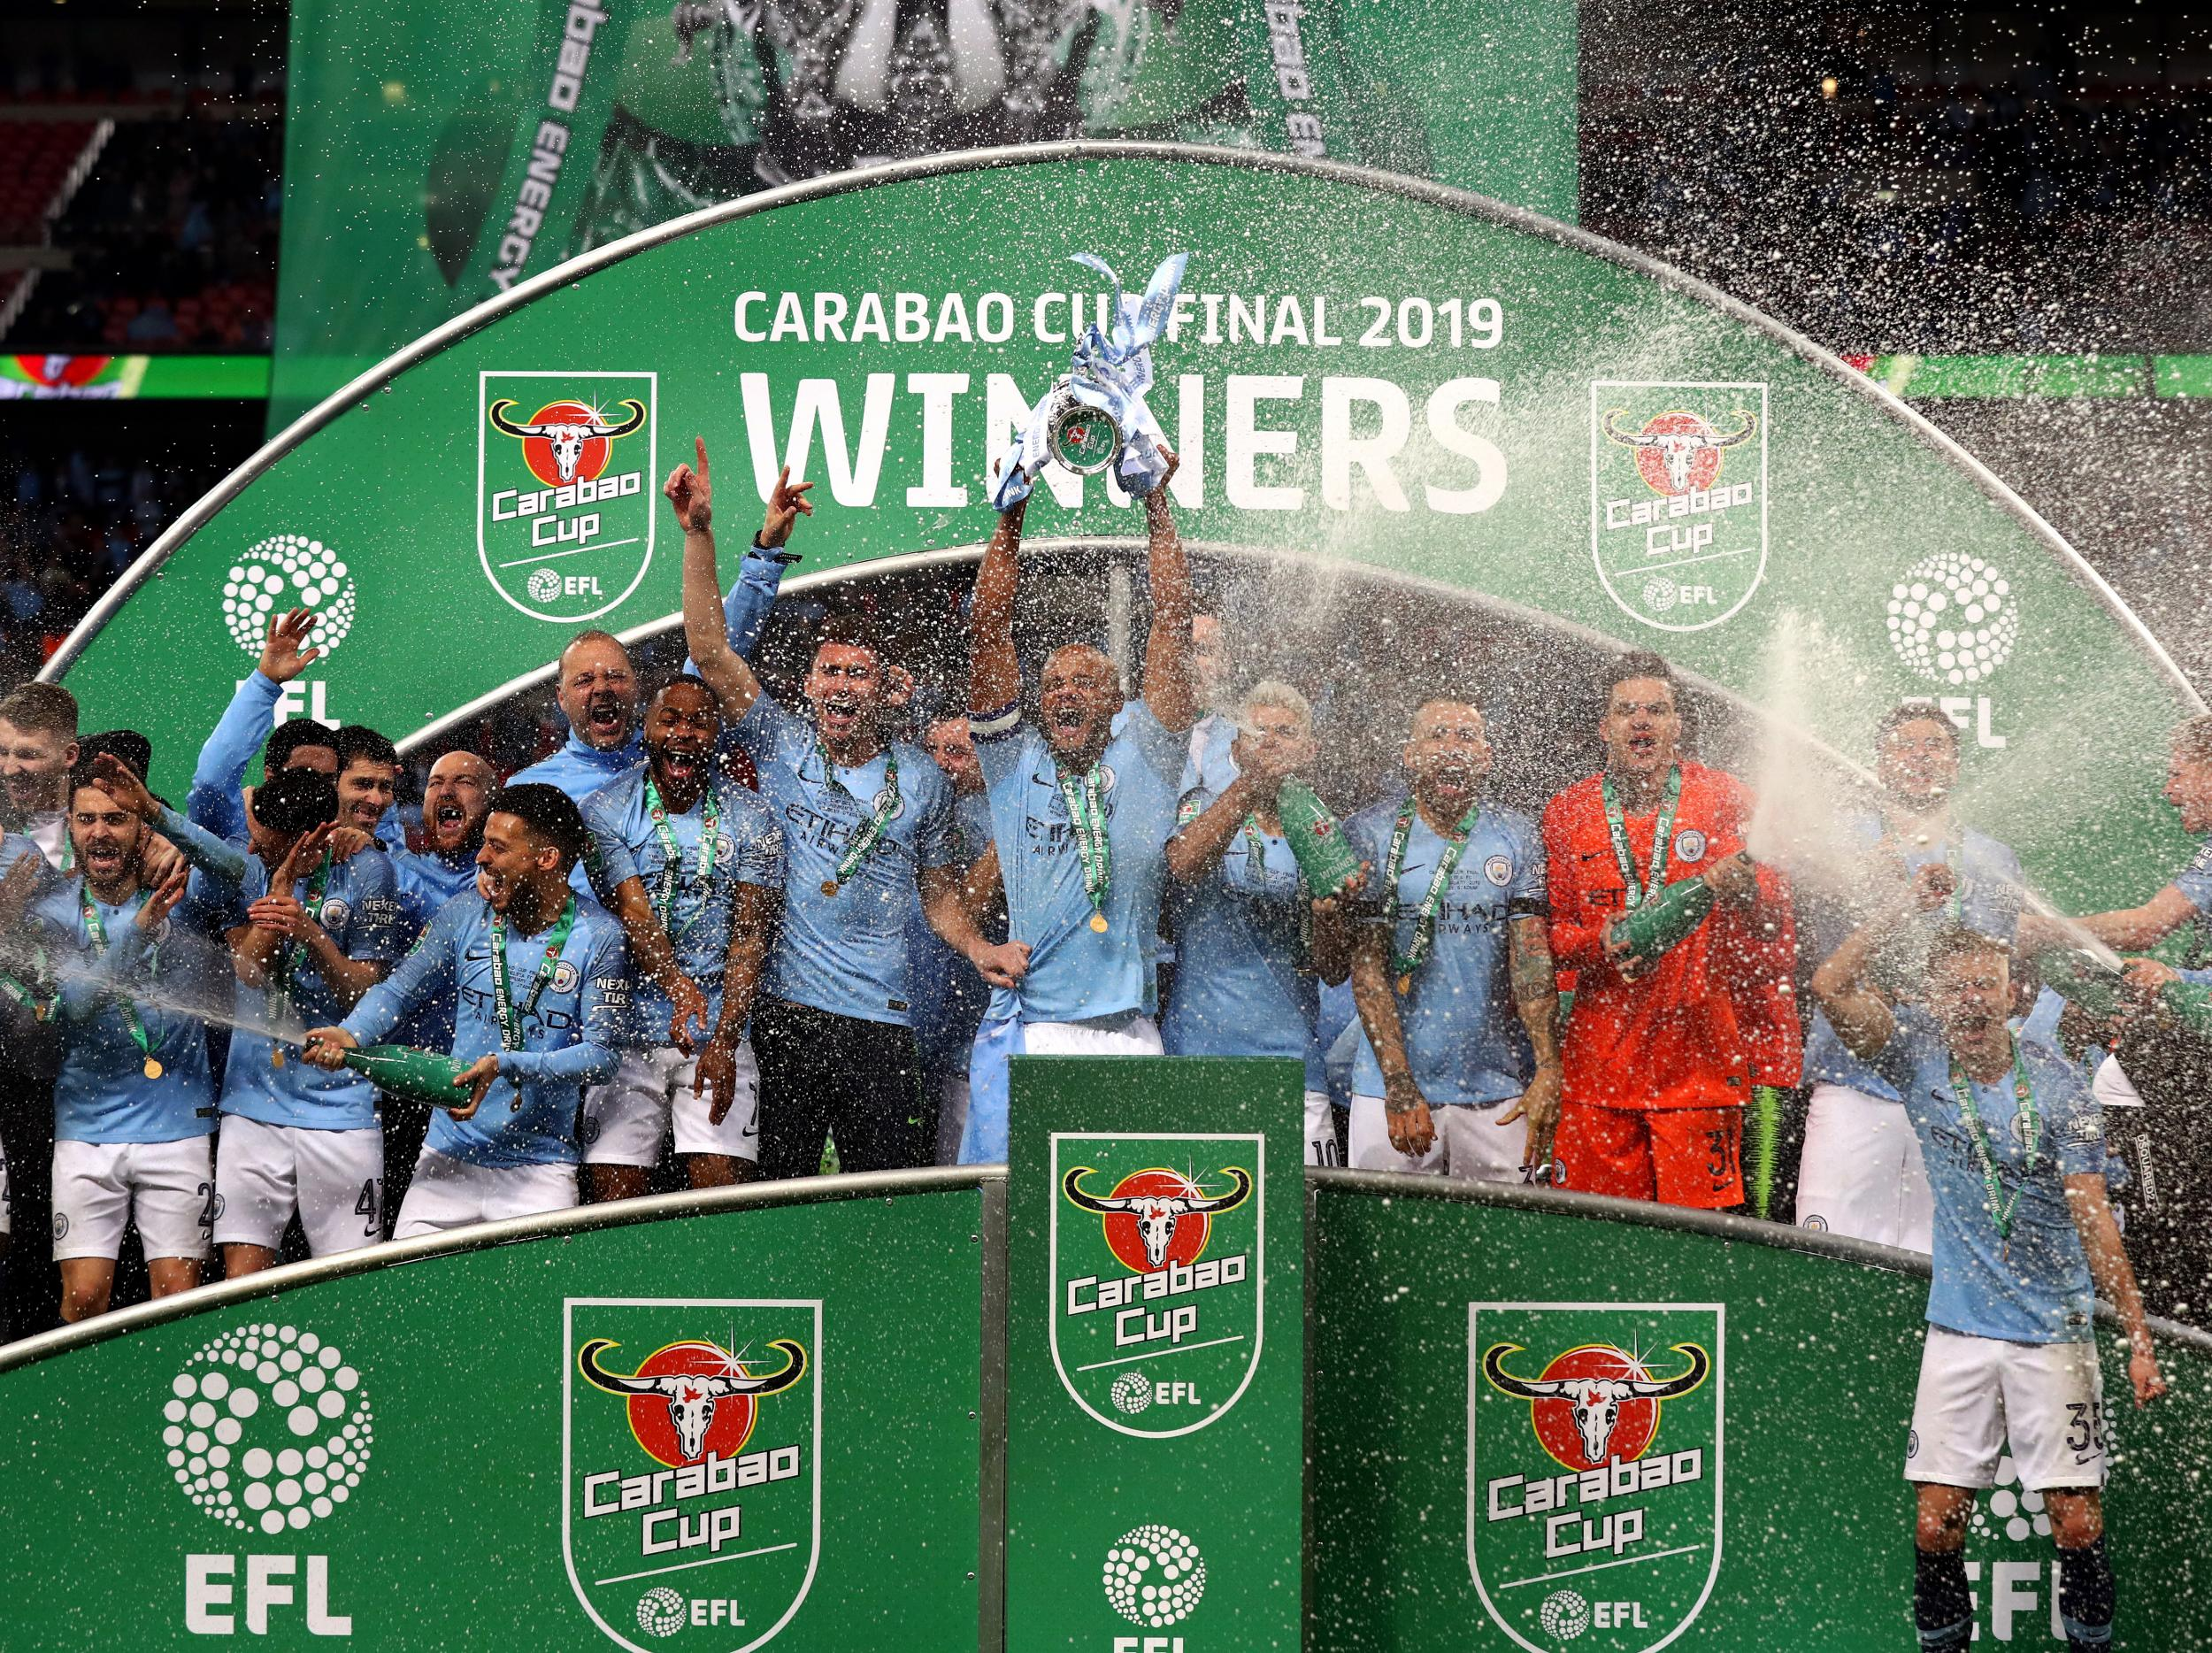 Carabao Cup third round draw: When is it, where can I watch and what are the numbers for each team?